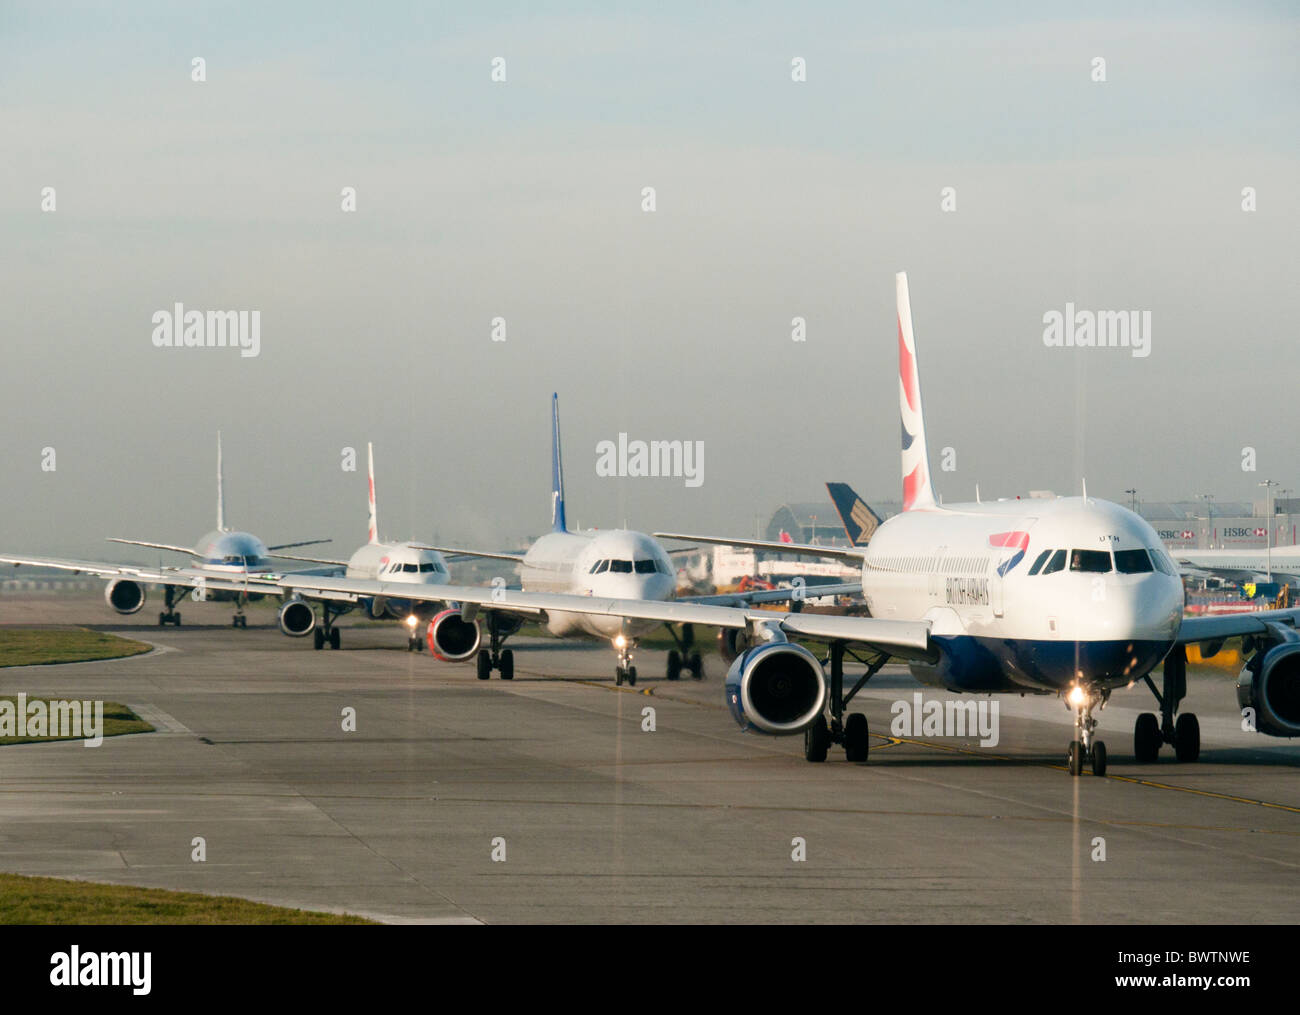 Planes queuing for takeoff at Heathrow airport in Britain - Stock Image